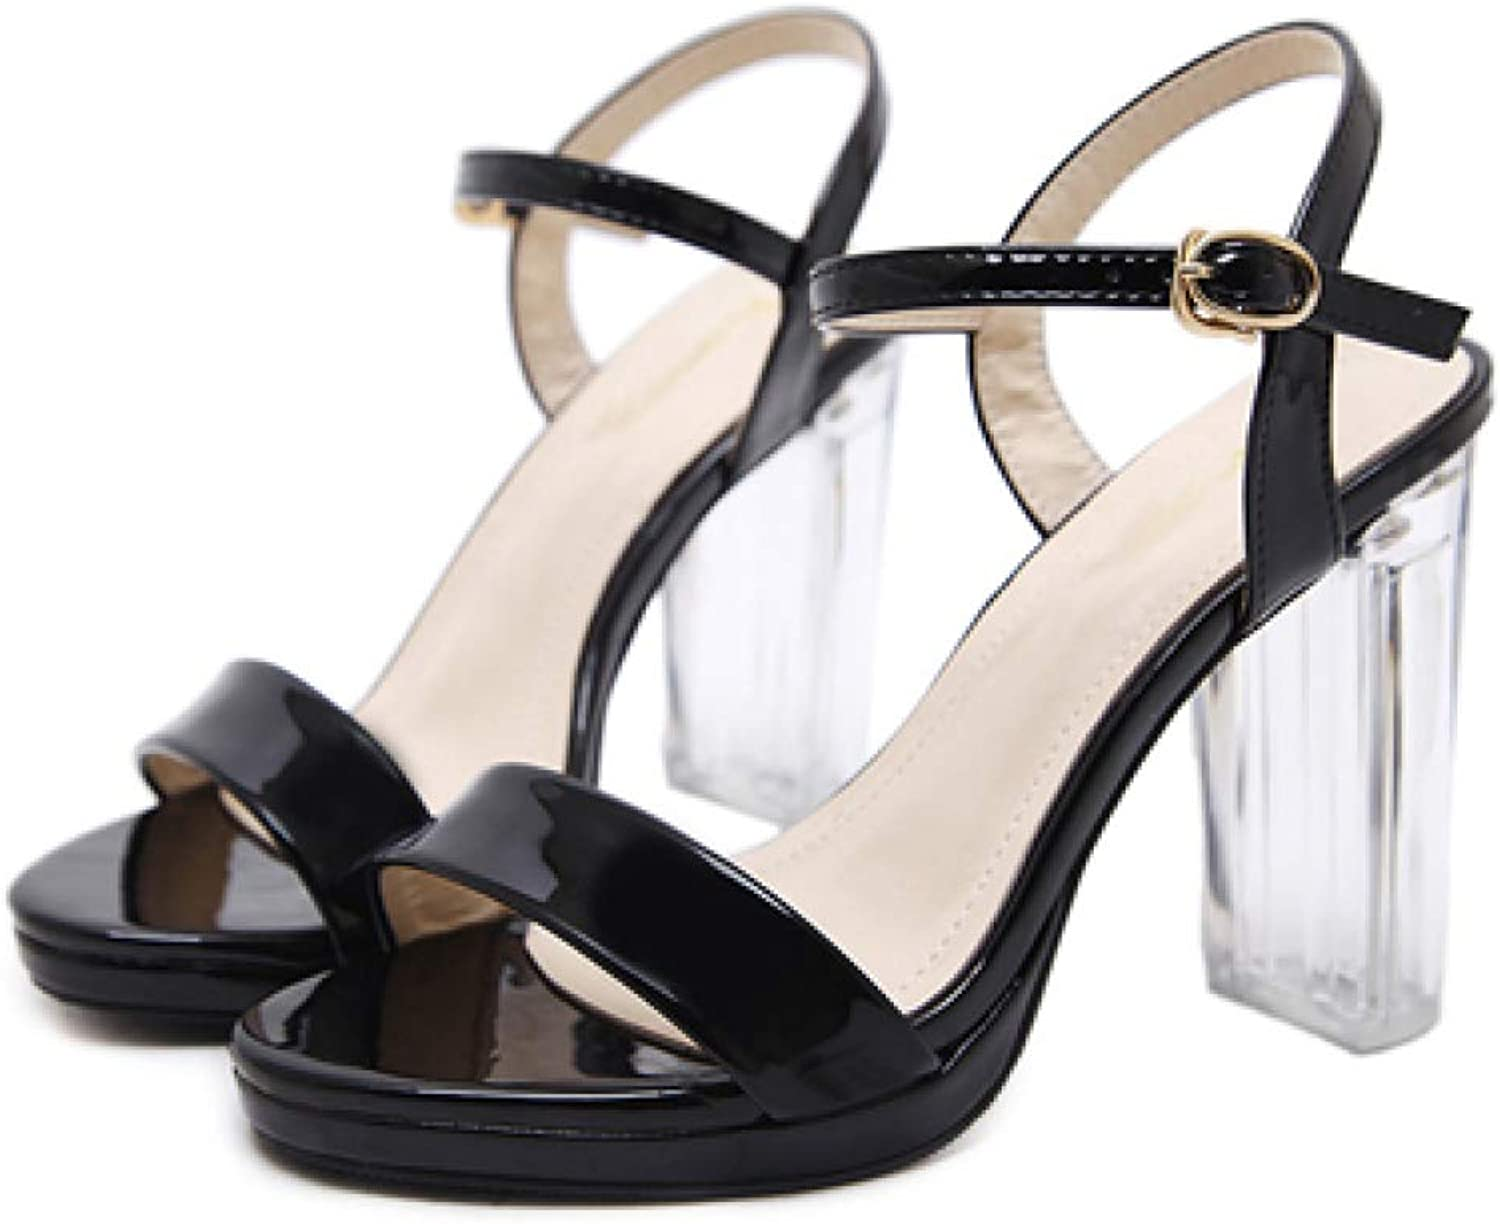 MEIZOKEN Womens Open Toe Chunky Clear High Heel Sandal Transparent Ankle Slingback Lace Up Pump Sandals